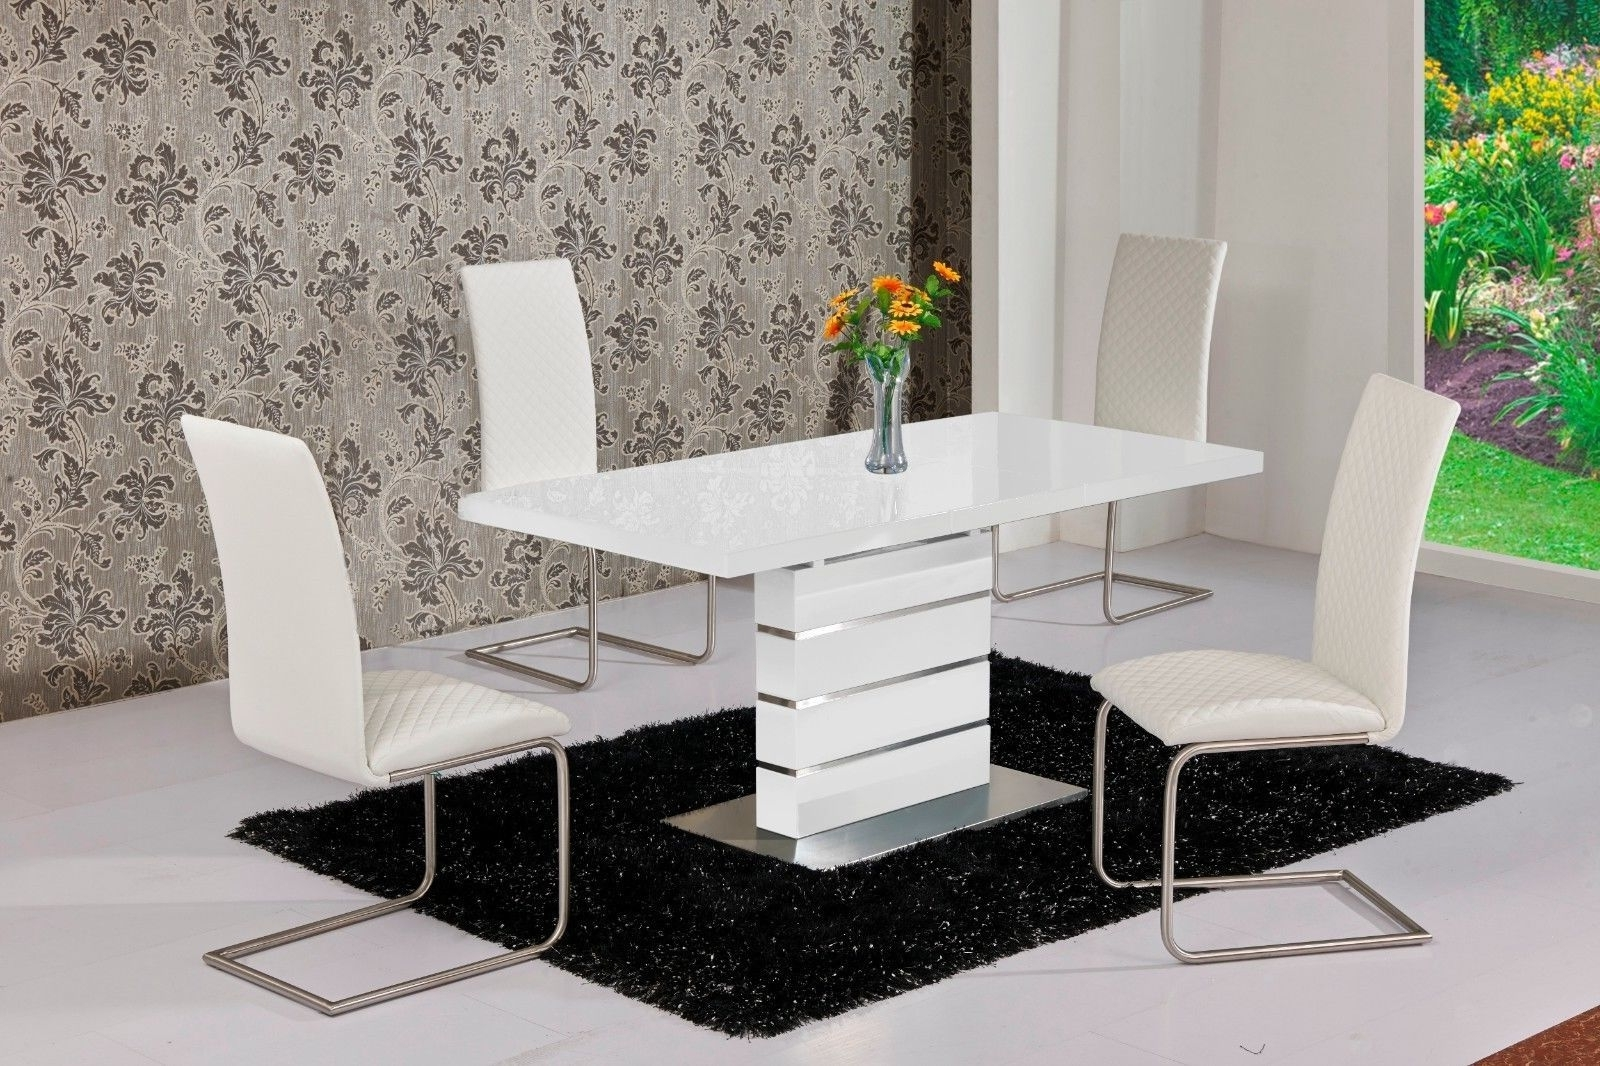 Mace High Gloss Extending 120 160 Dining Table & Chair Set – White With Regard To Most Recently Released White Dining Tables With 6 Chairs (View 11 of 25)